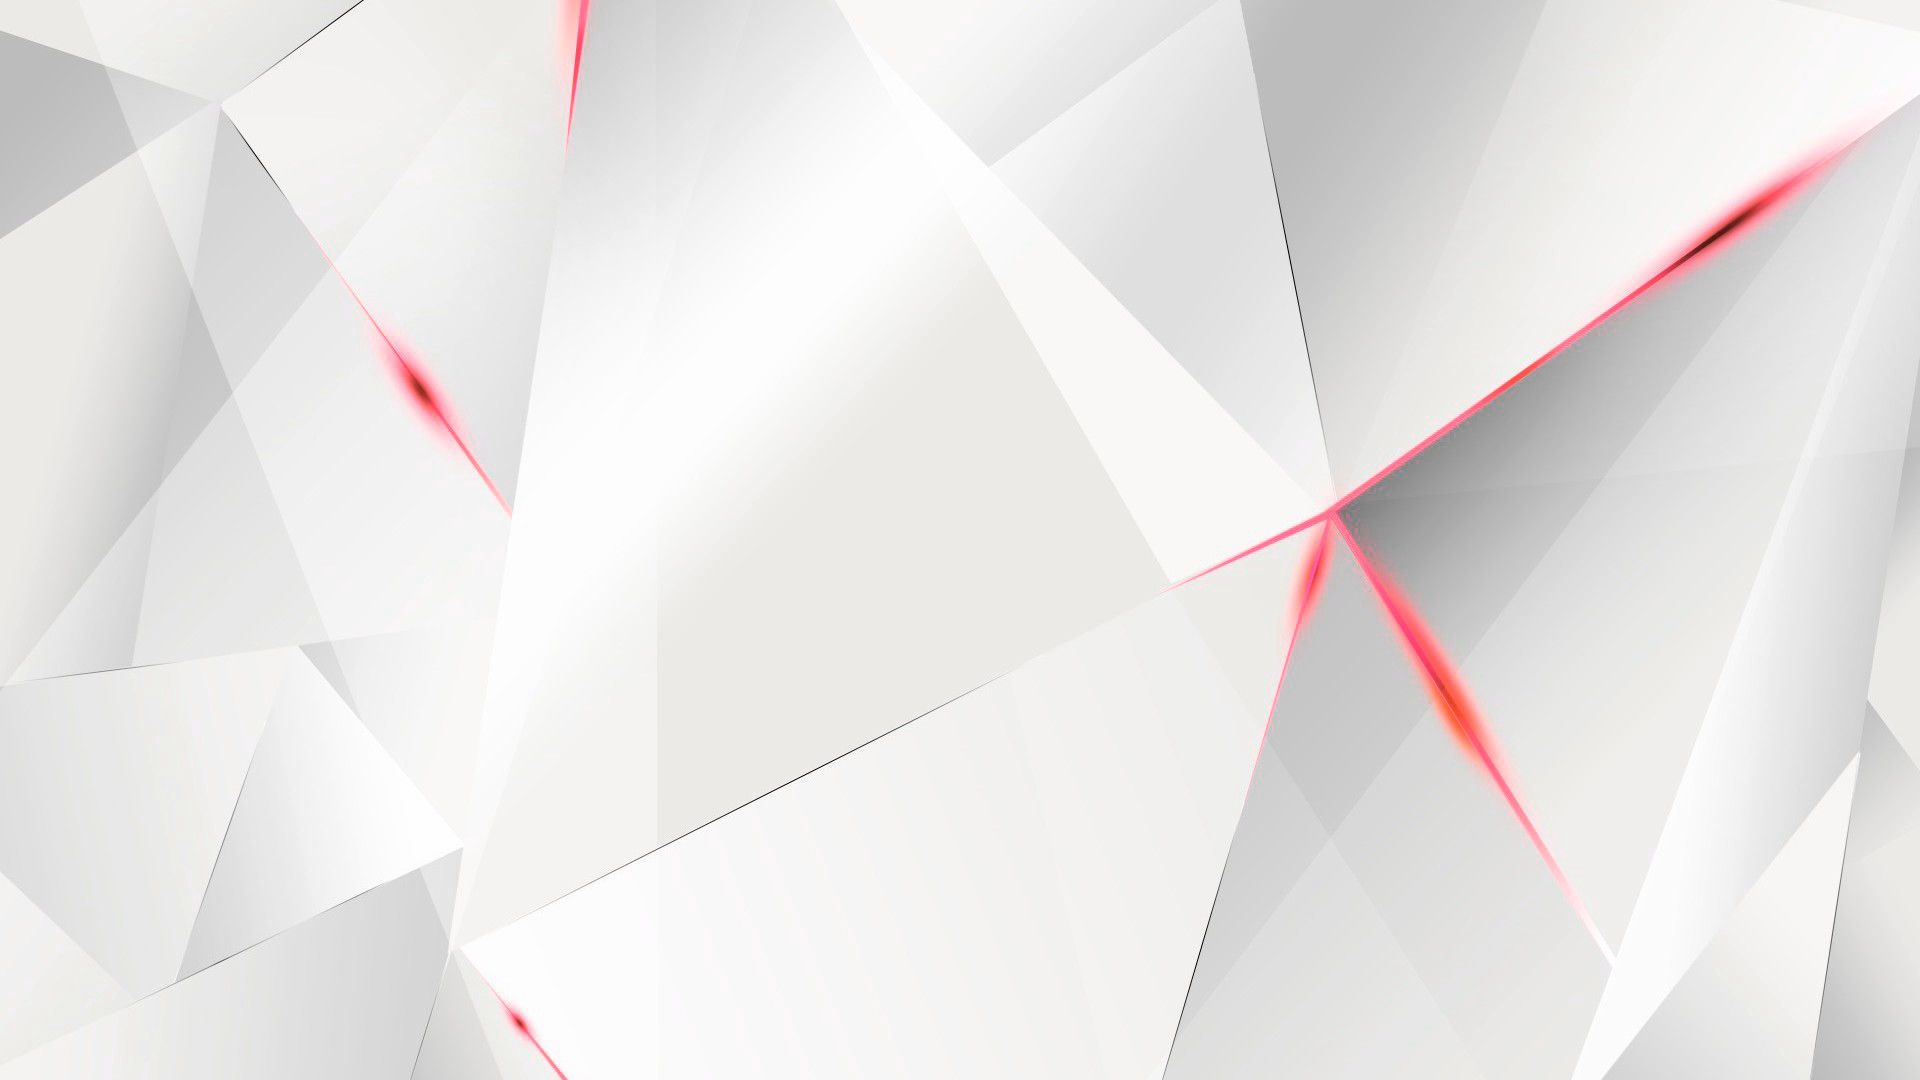 Res 1920x1080 White Abstract Wallpaper Picture Red And White Wallpaper Abstract Wallpaper Fantastic Wallpapers